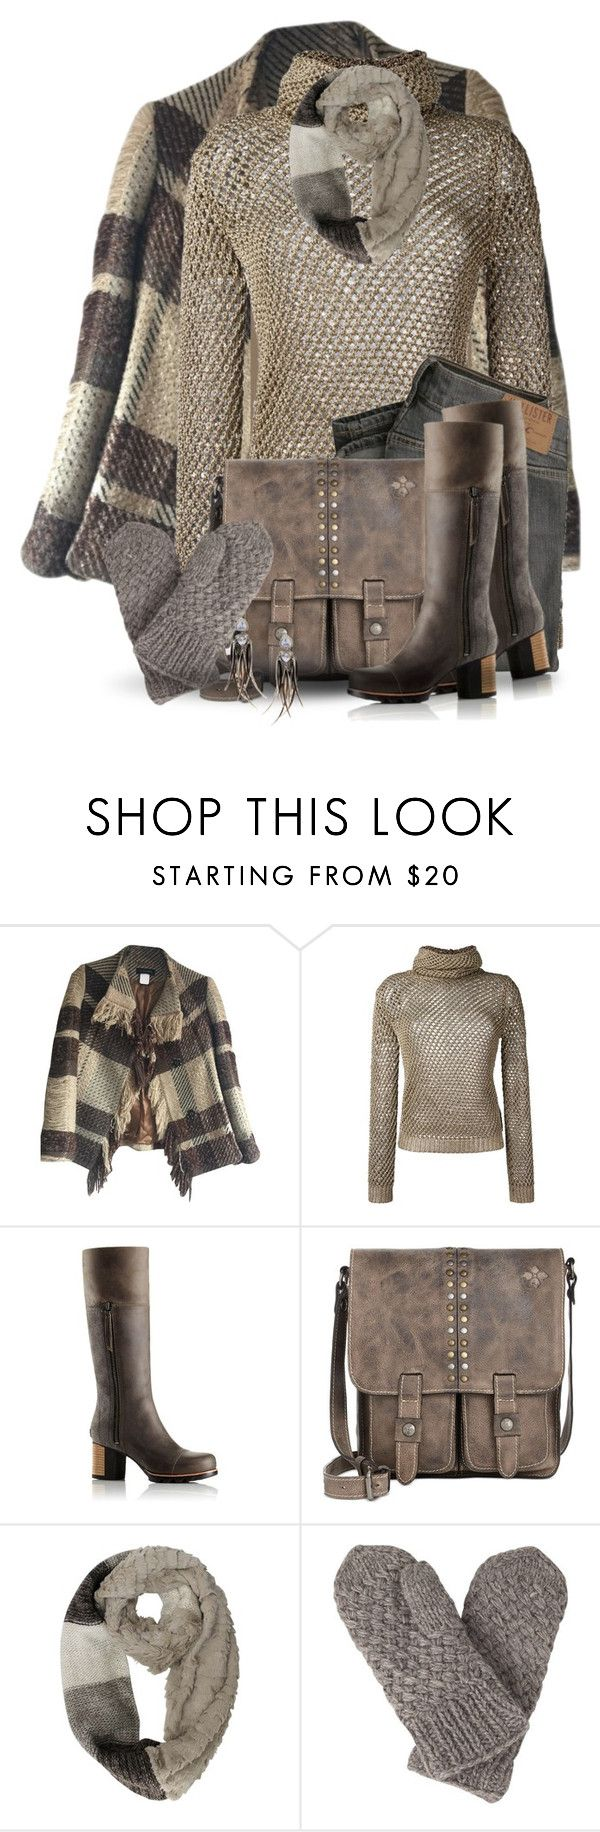 """""""The Sweater"""" by jackie22 ❤ liked on Polyvore featuring ESCADA, Valentino, SOREL, Patricia Nash, Laundromat and Katie Rowland"""